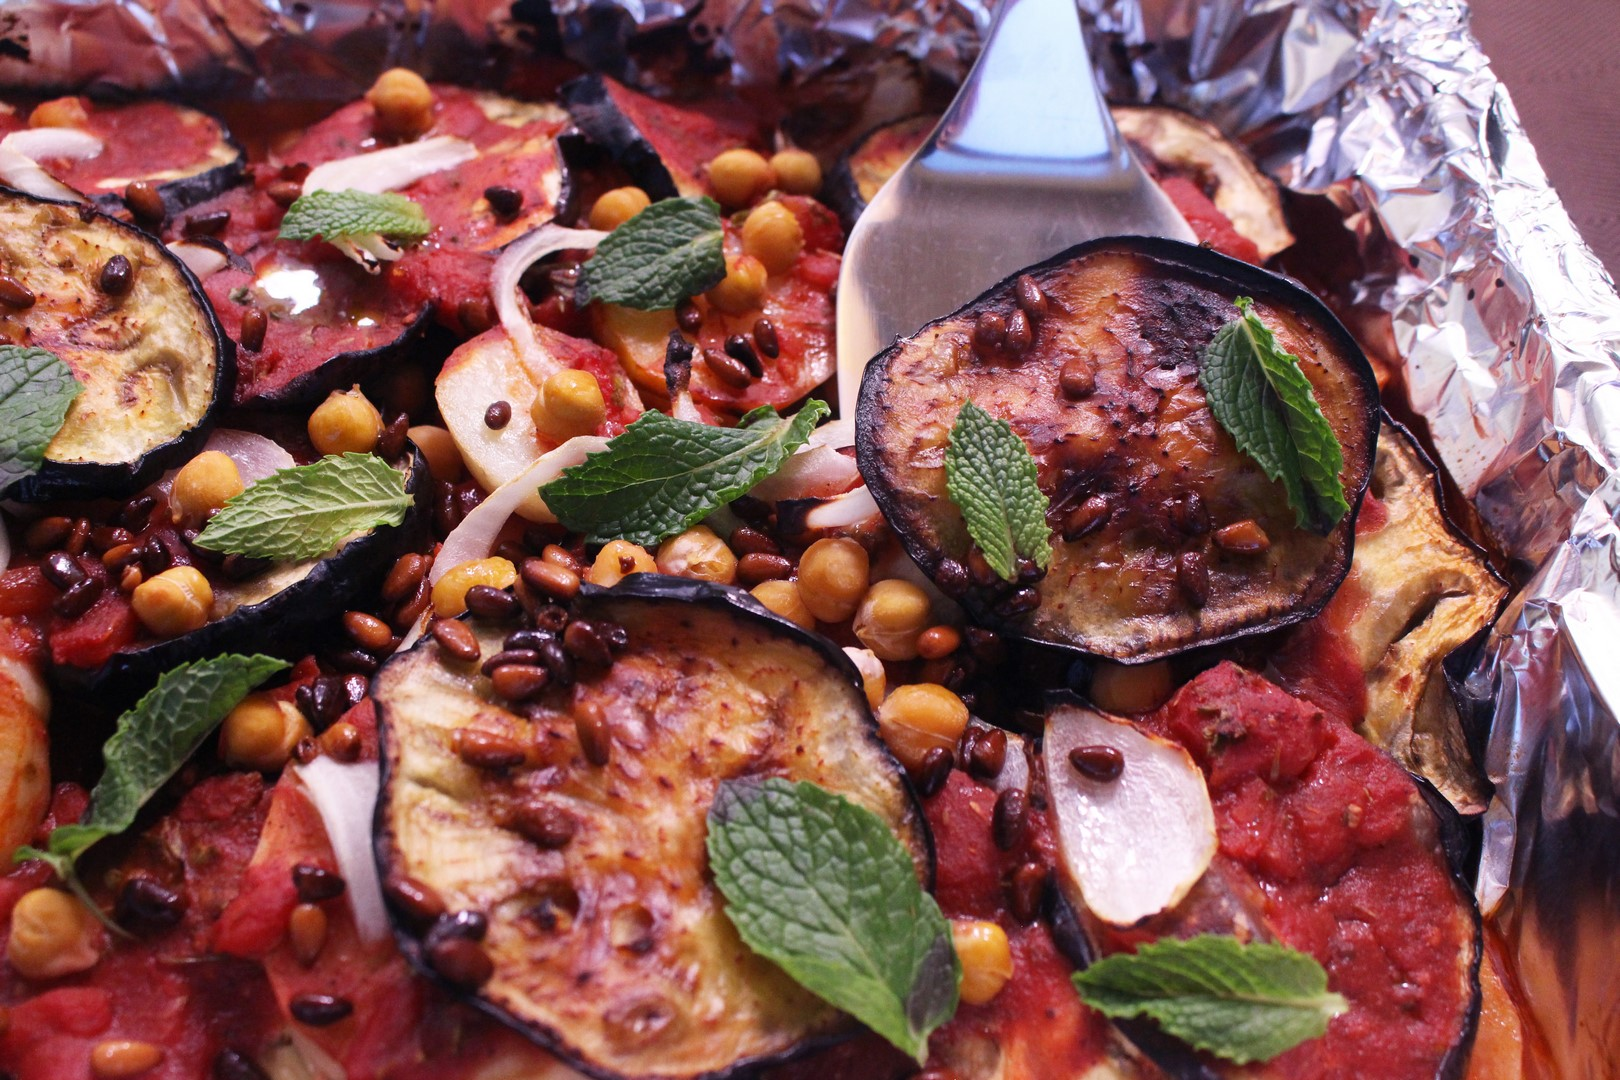 Syrian Moussaka with Eggplant and Potato (Vegan)